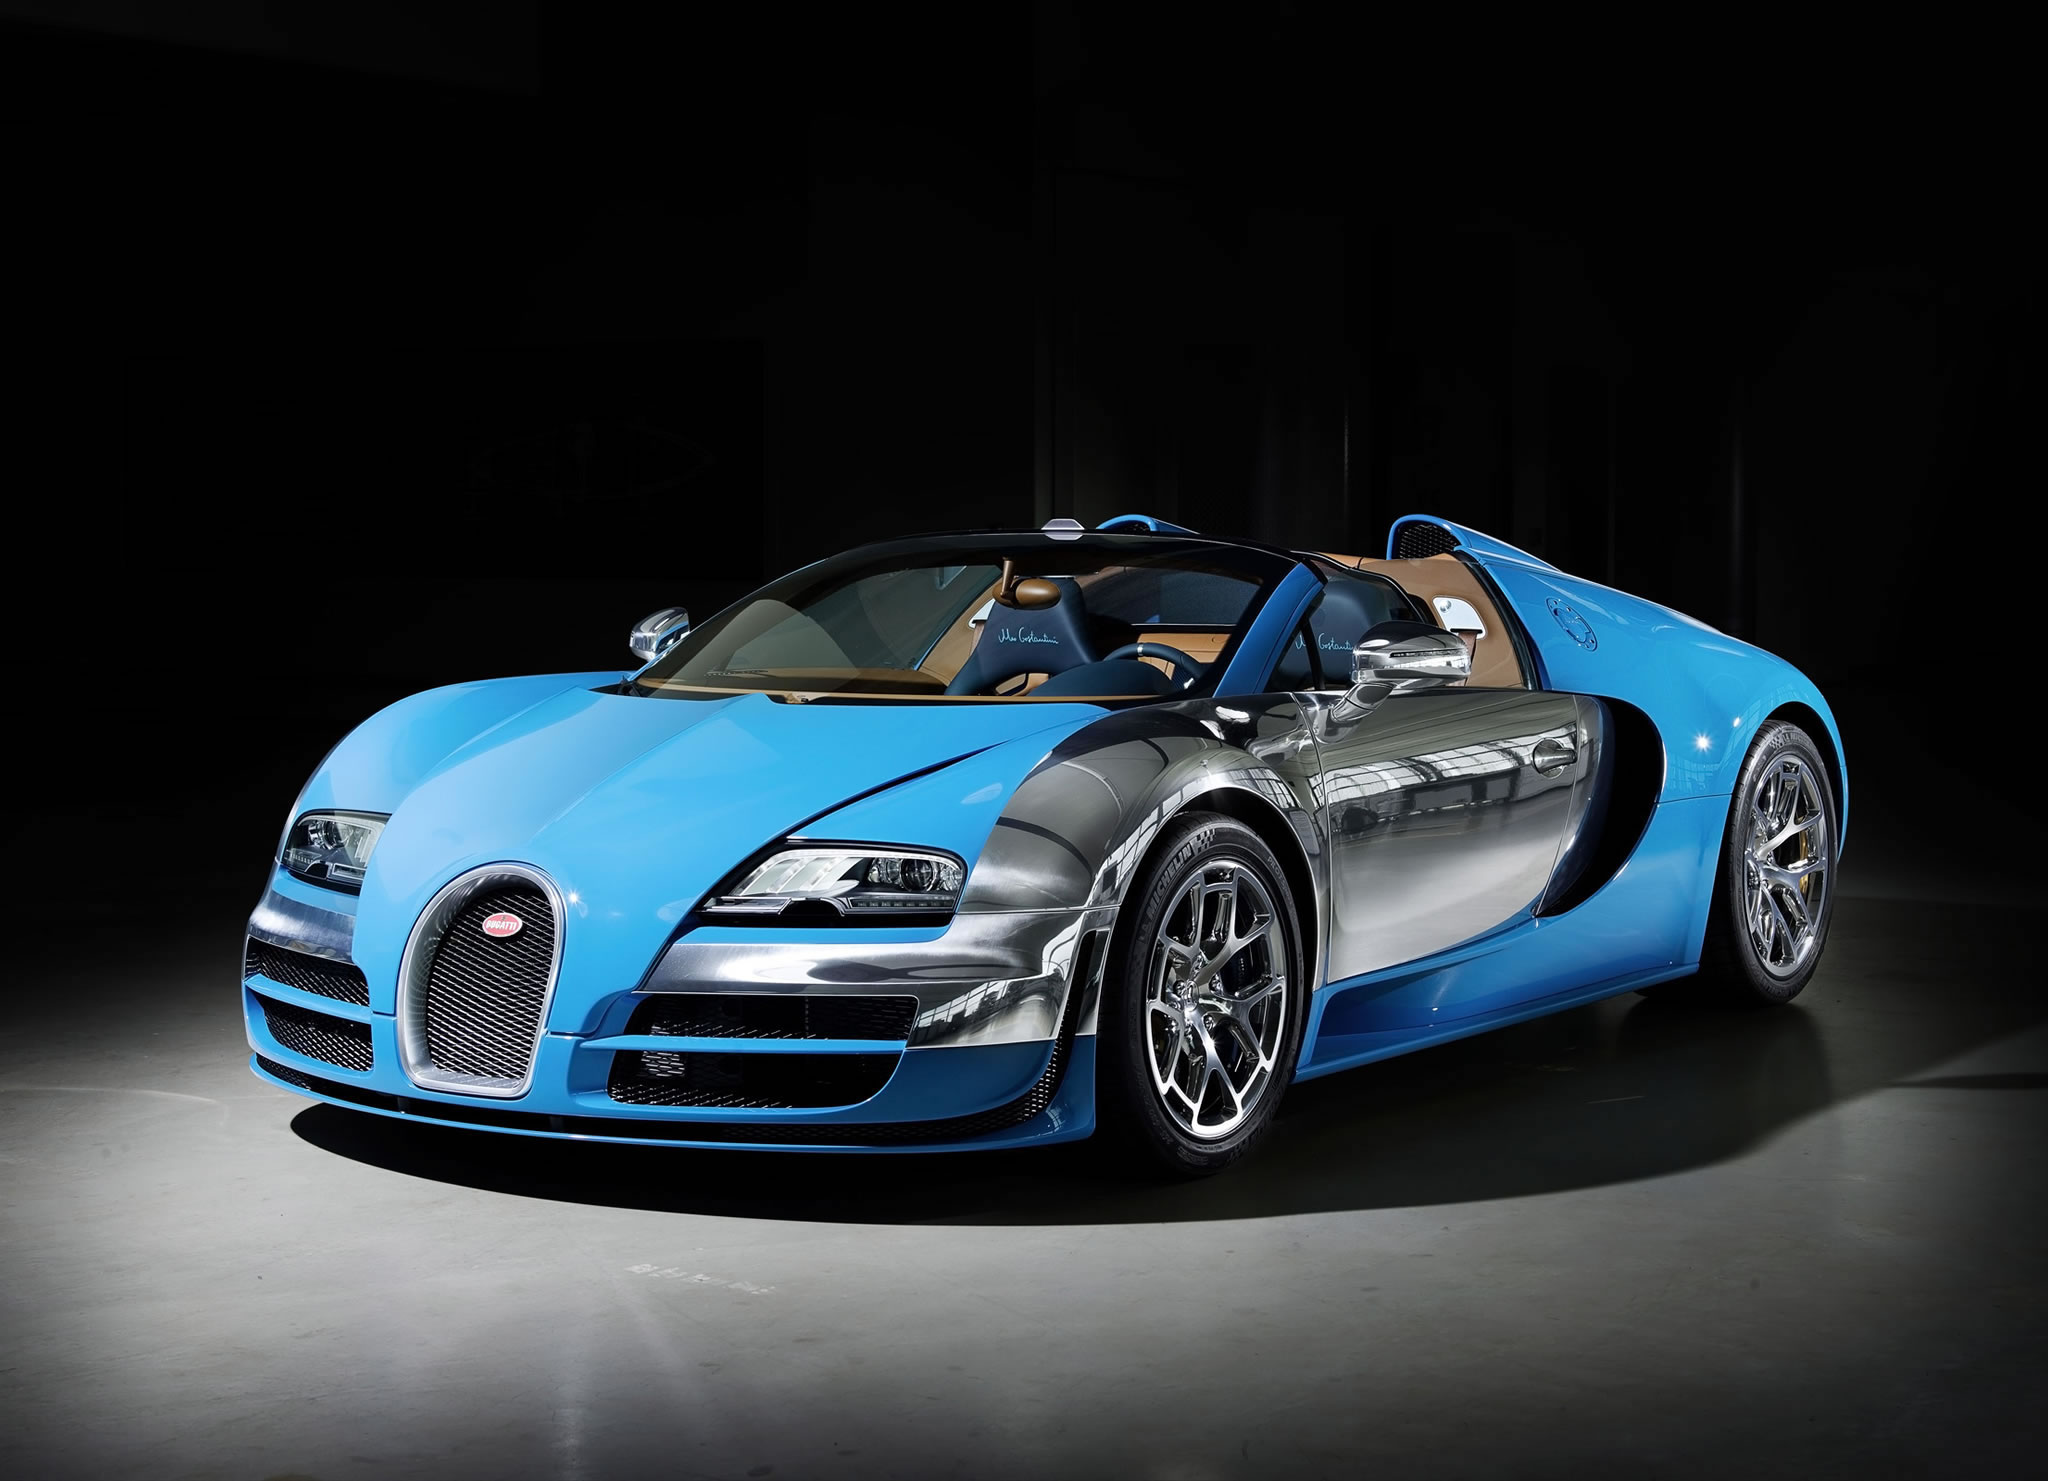 2014 bugatti veyron 16 4 grand sport vitesse meo. Black Bedroom Furniture Sets. Home Design Ideas